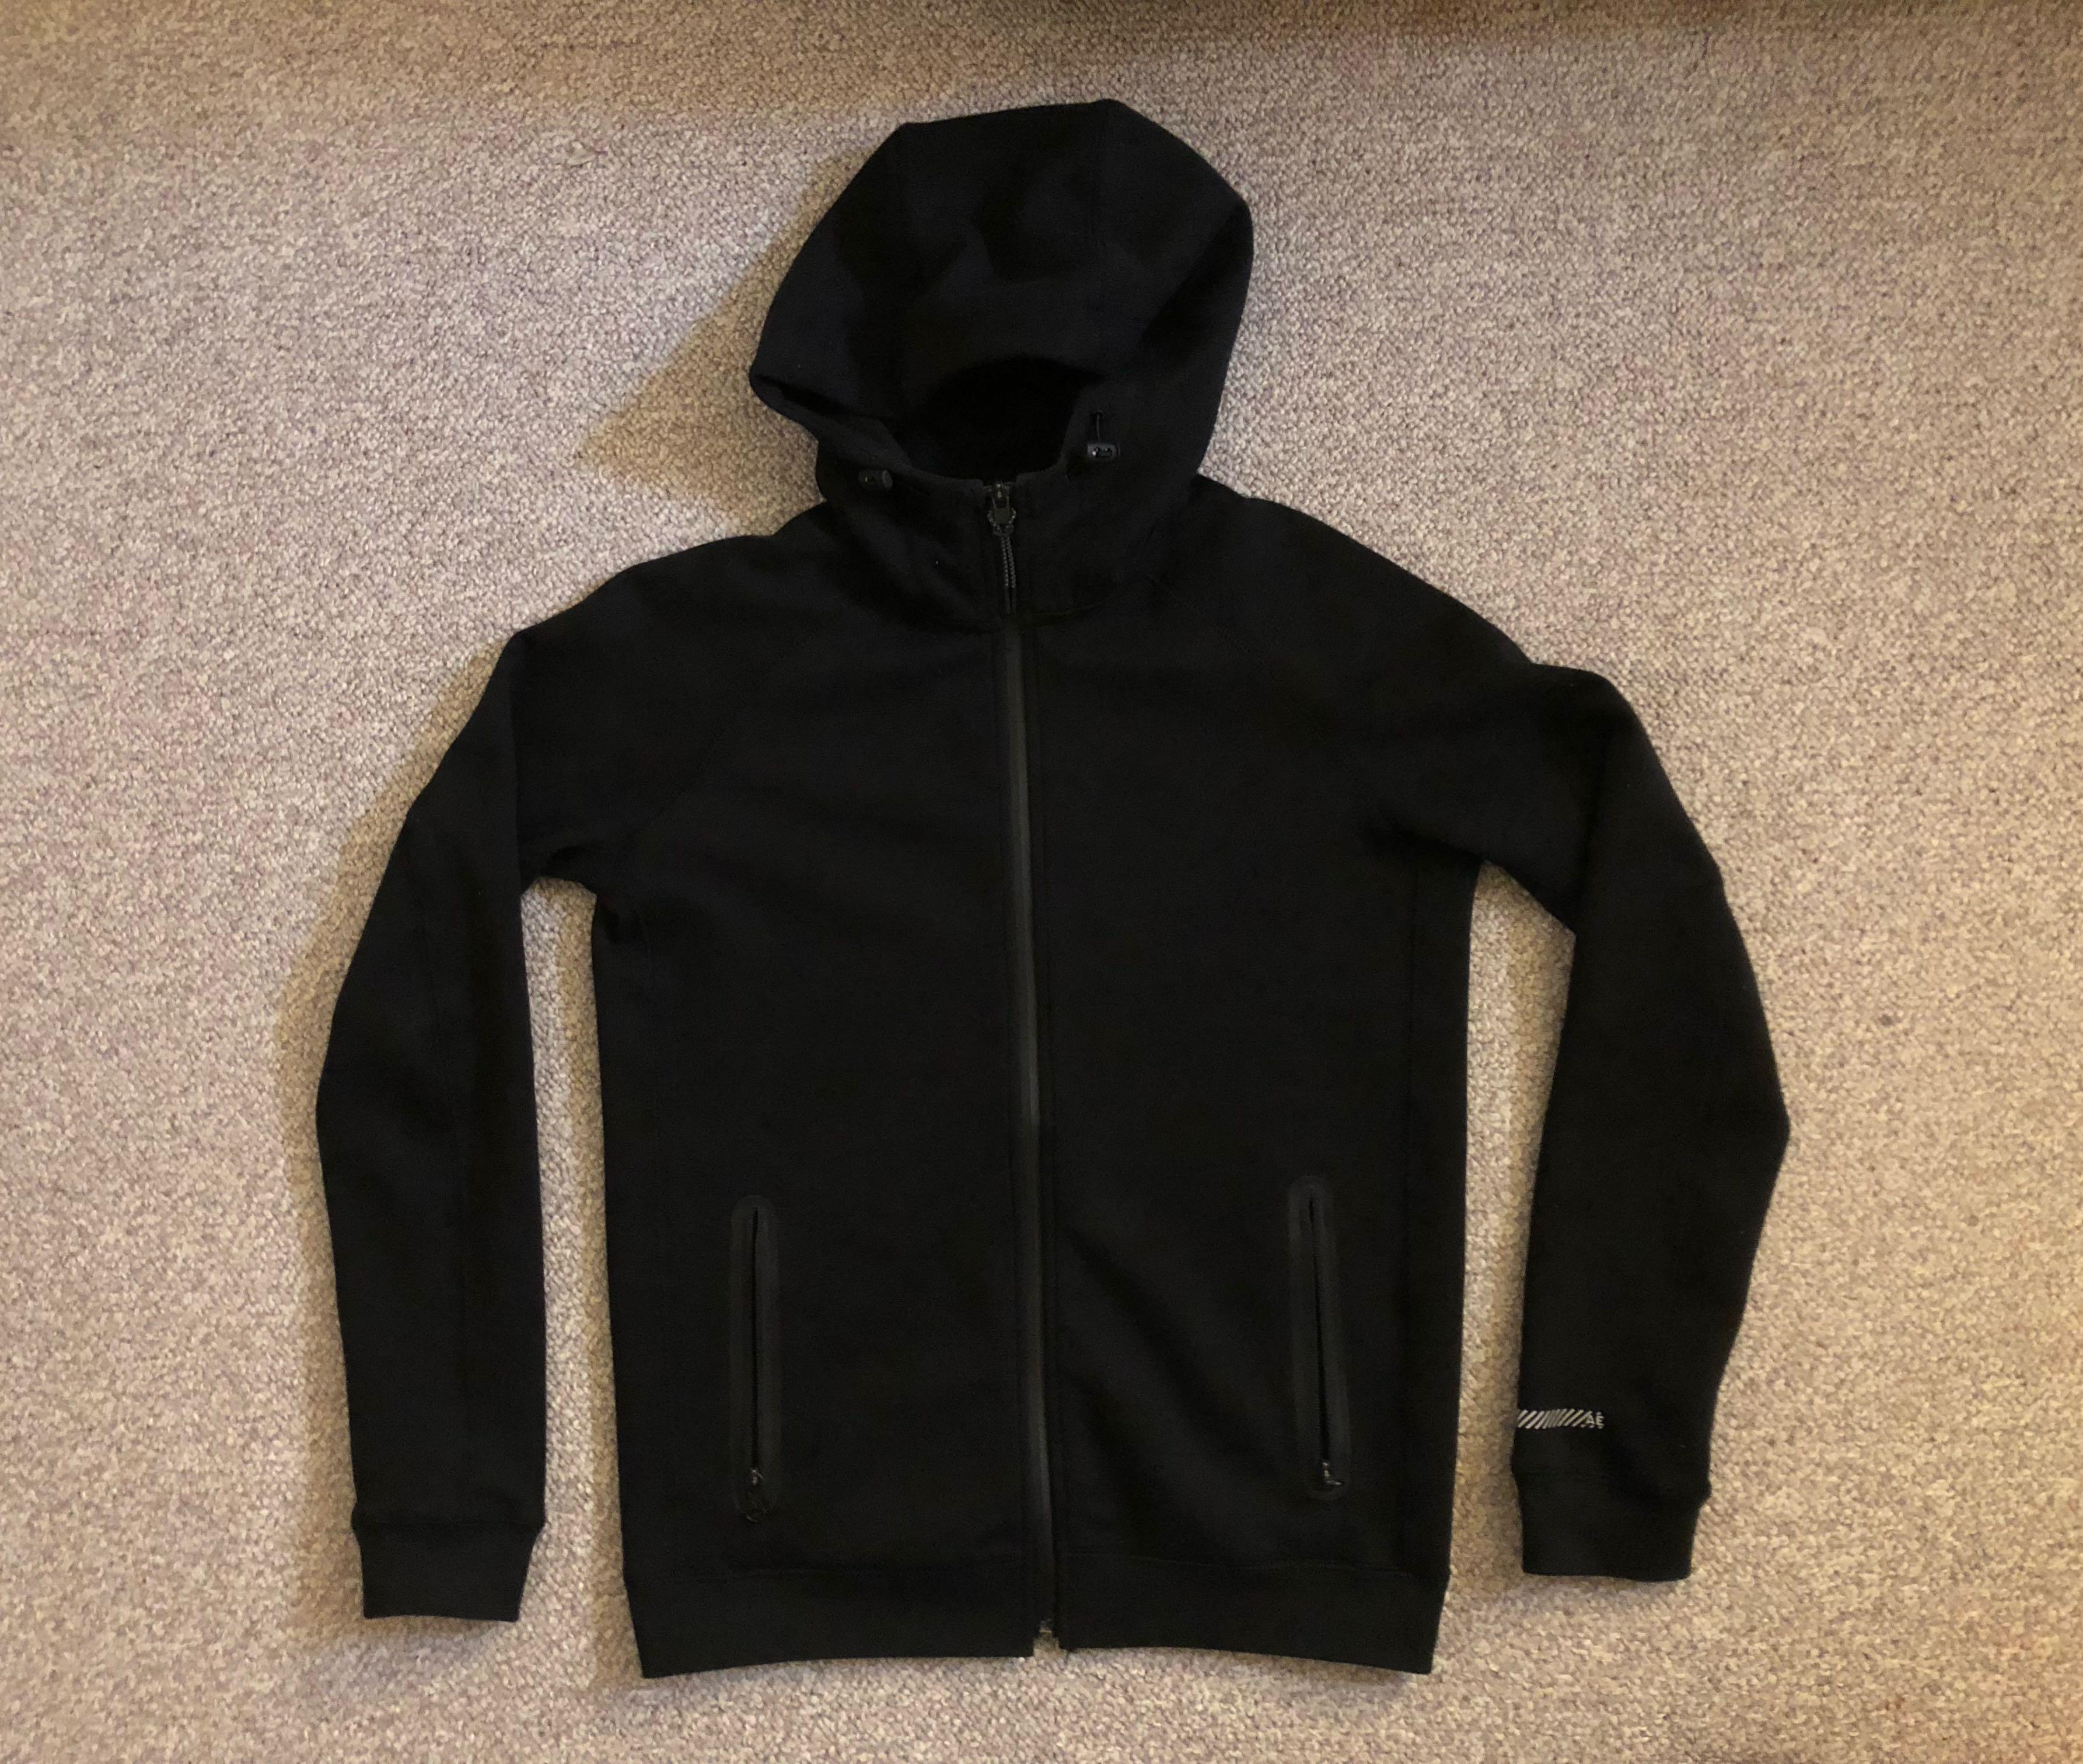 American Eagle Outfitters Black Jacket